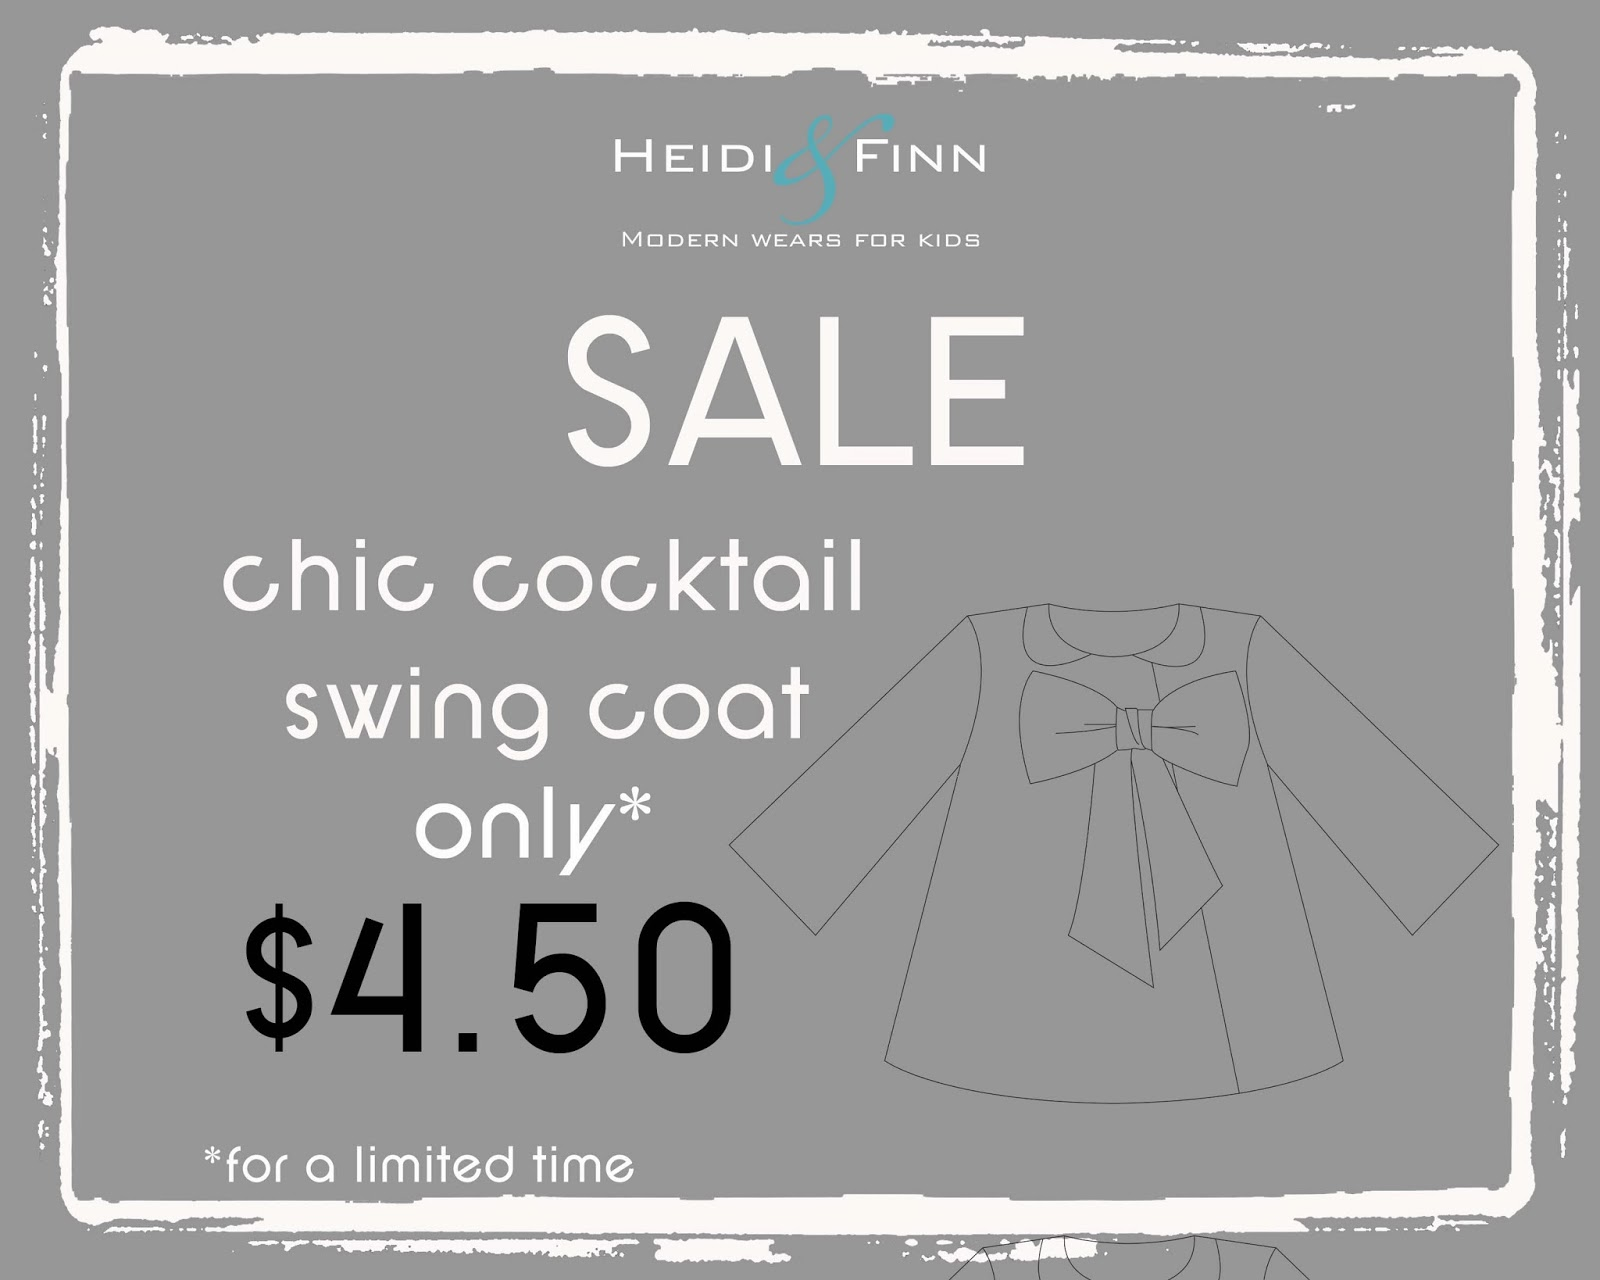 http://www.craftsy.com/pattern/sewing/clothing/sale-chic-cocktail-swing-coat-12m-5t/51593